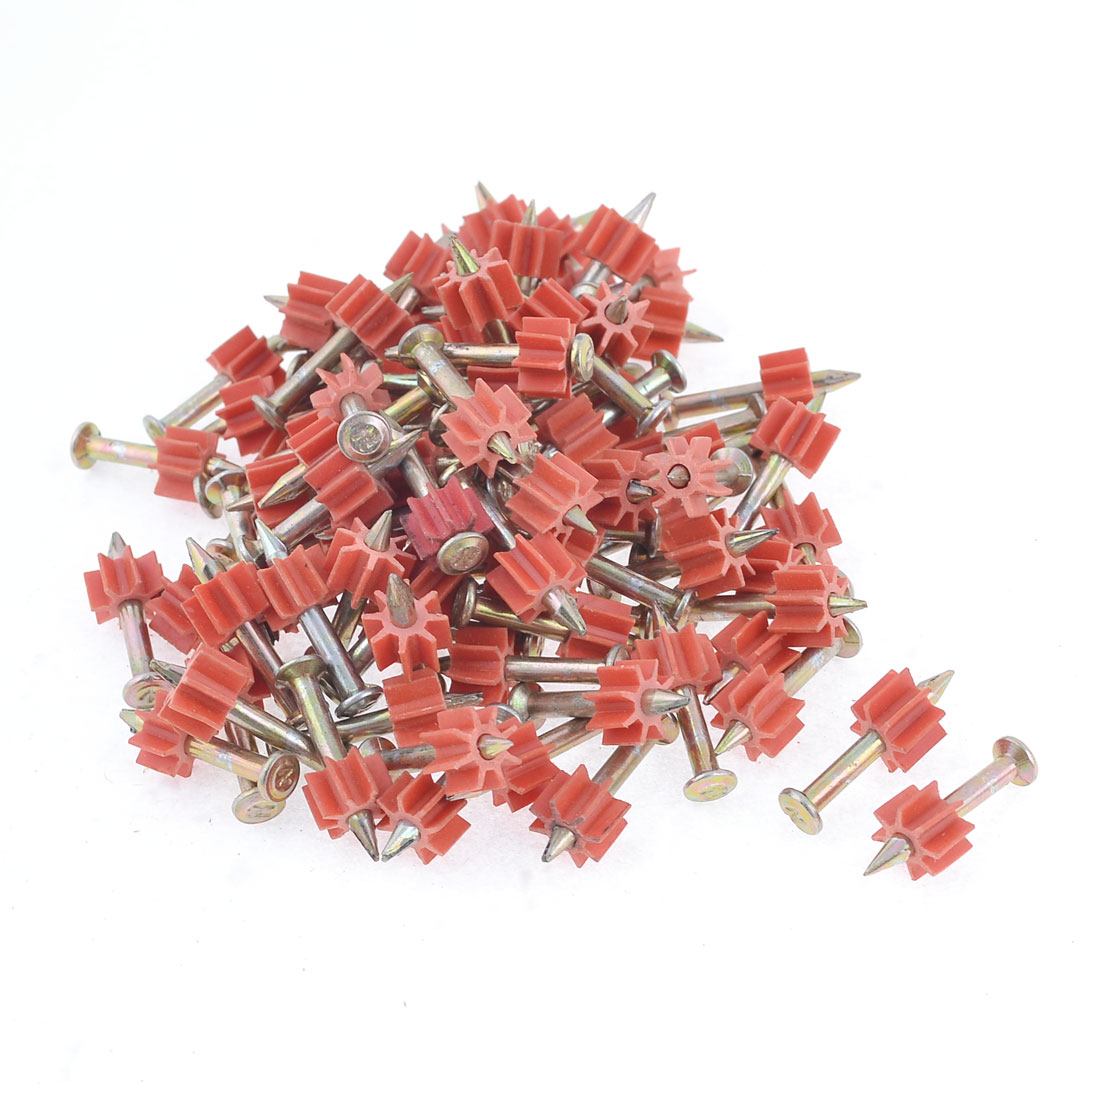 90 Pcs 2.8mm Dia Shank 25mm Long Power Hammer Drive Pins Fasteners